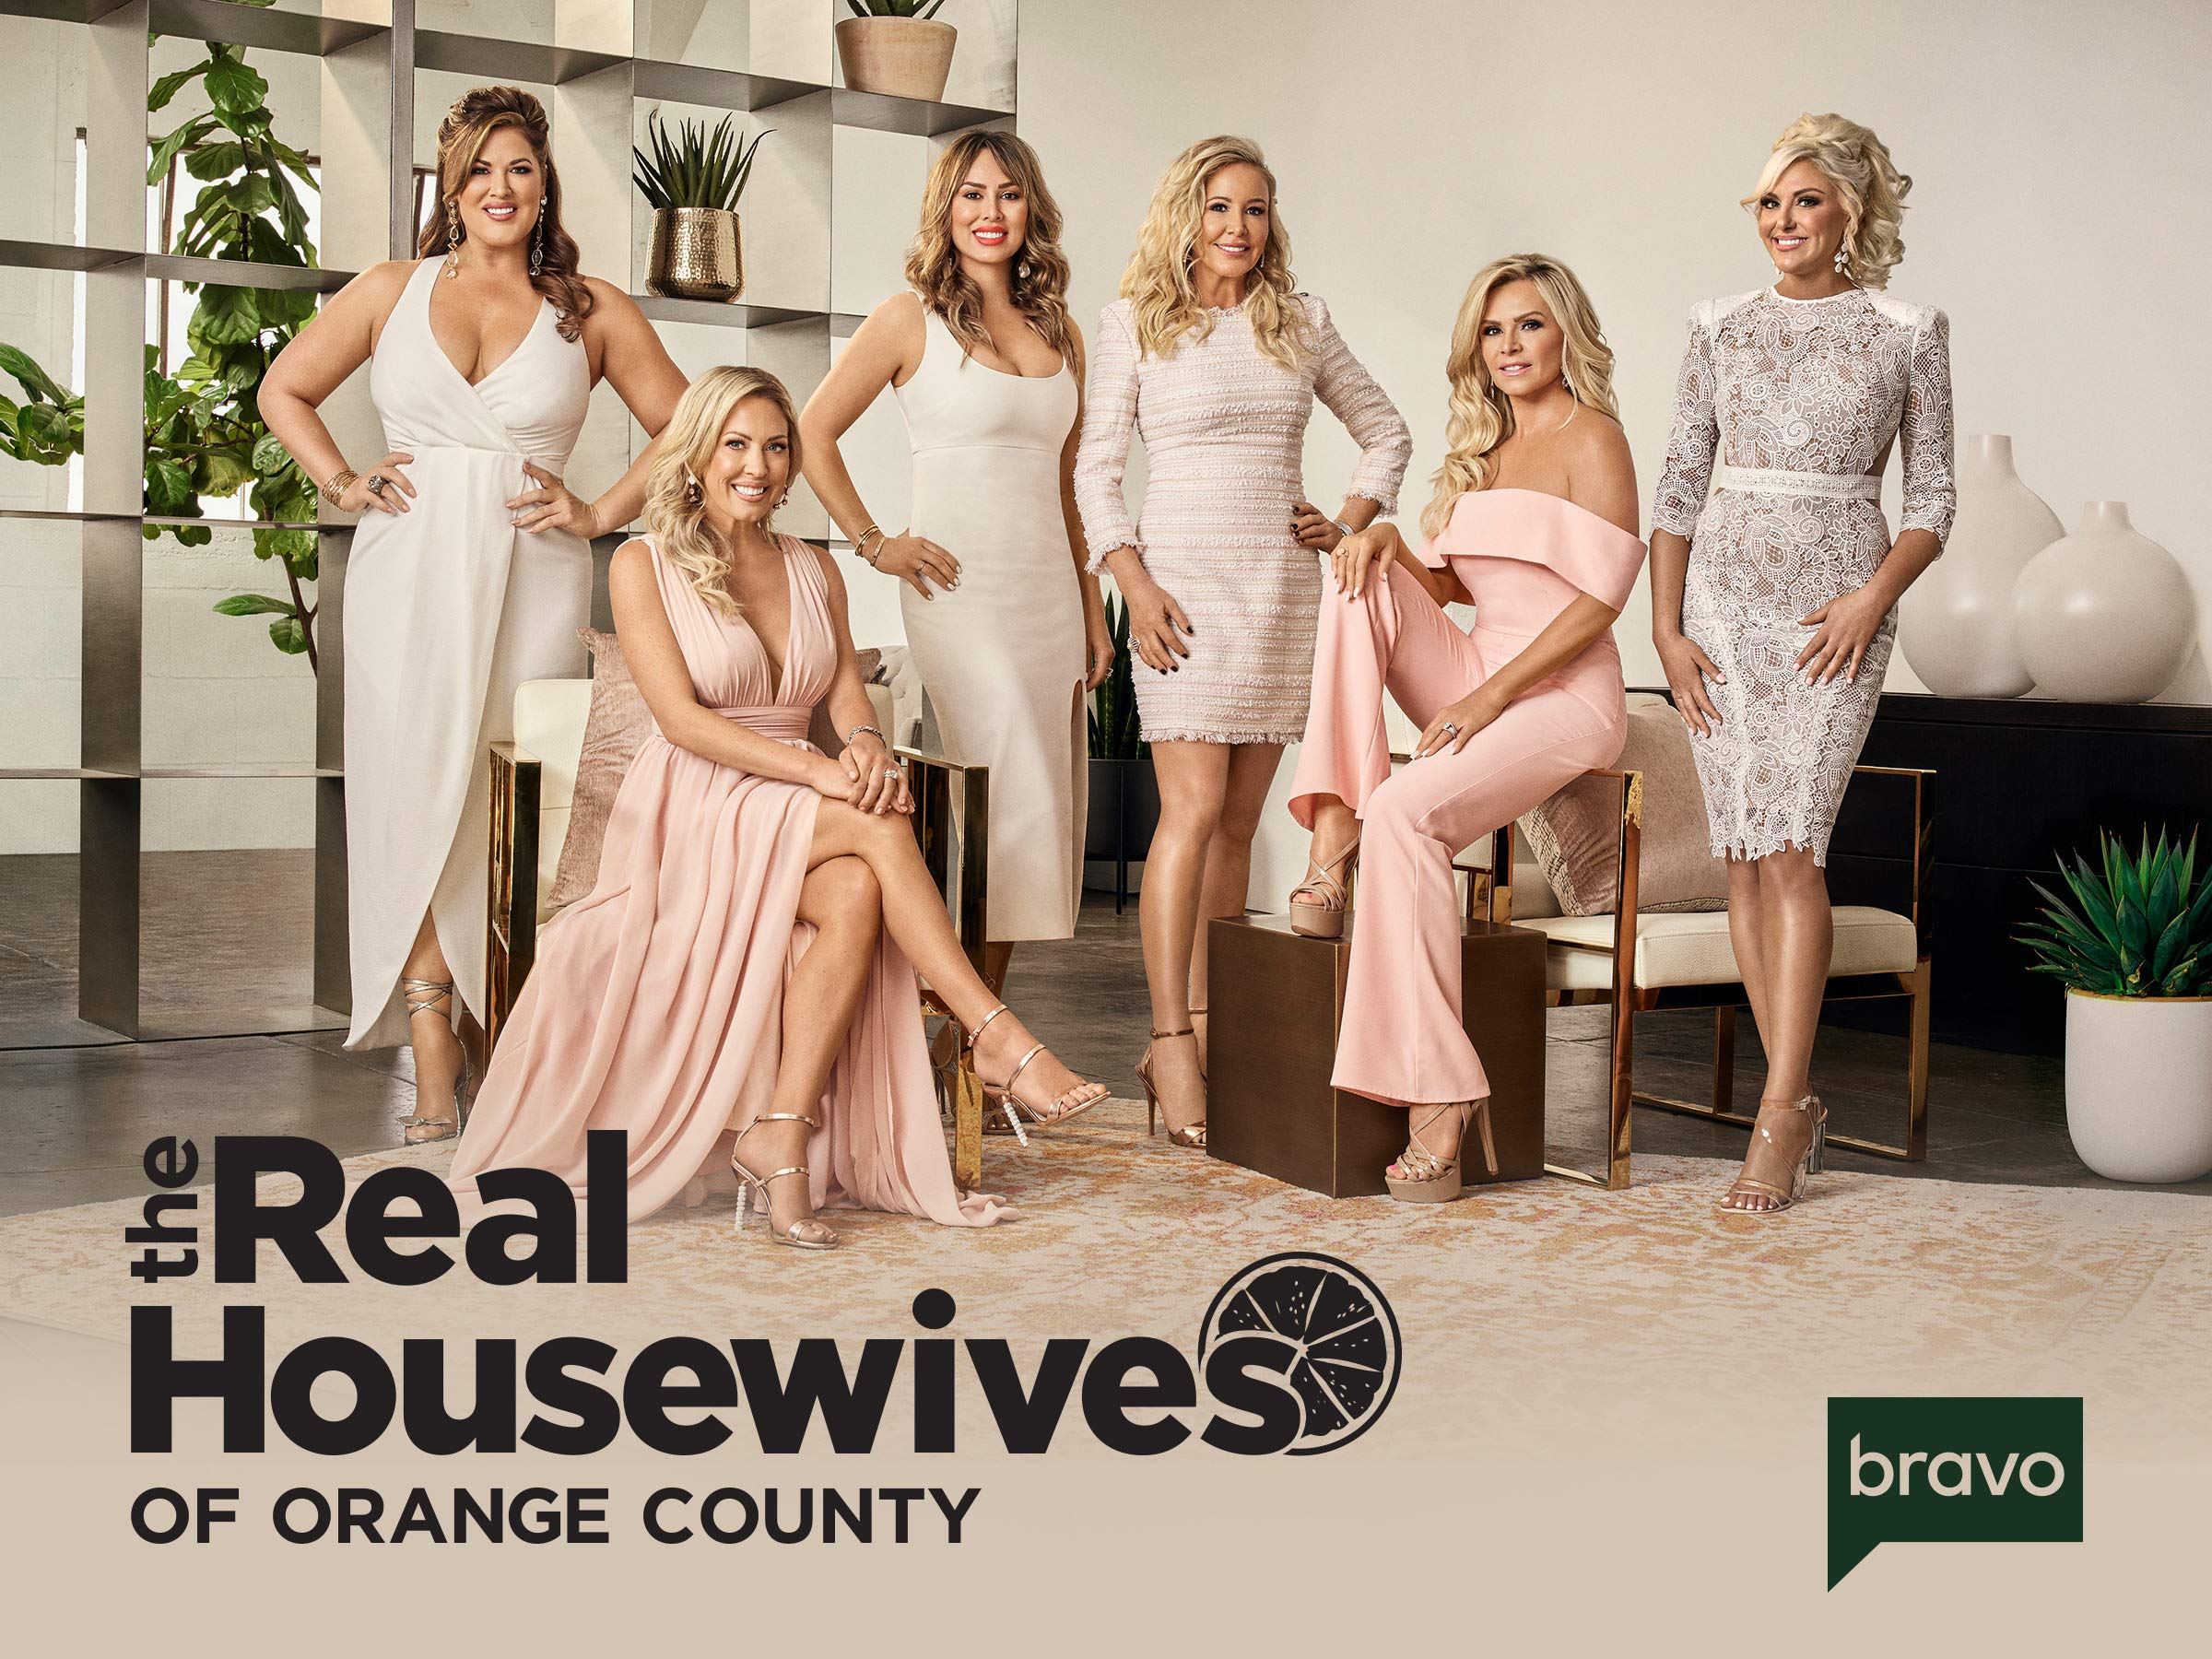 Real Housewives of Orange County O-Shot